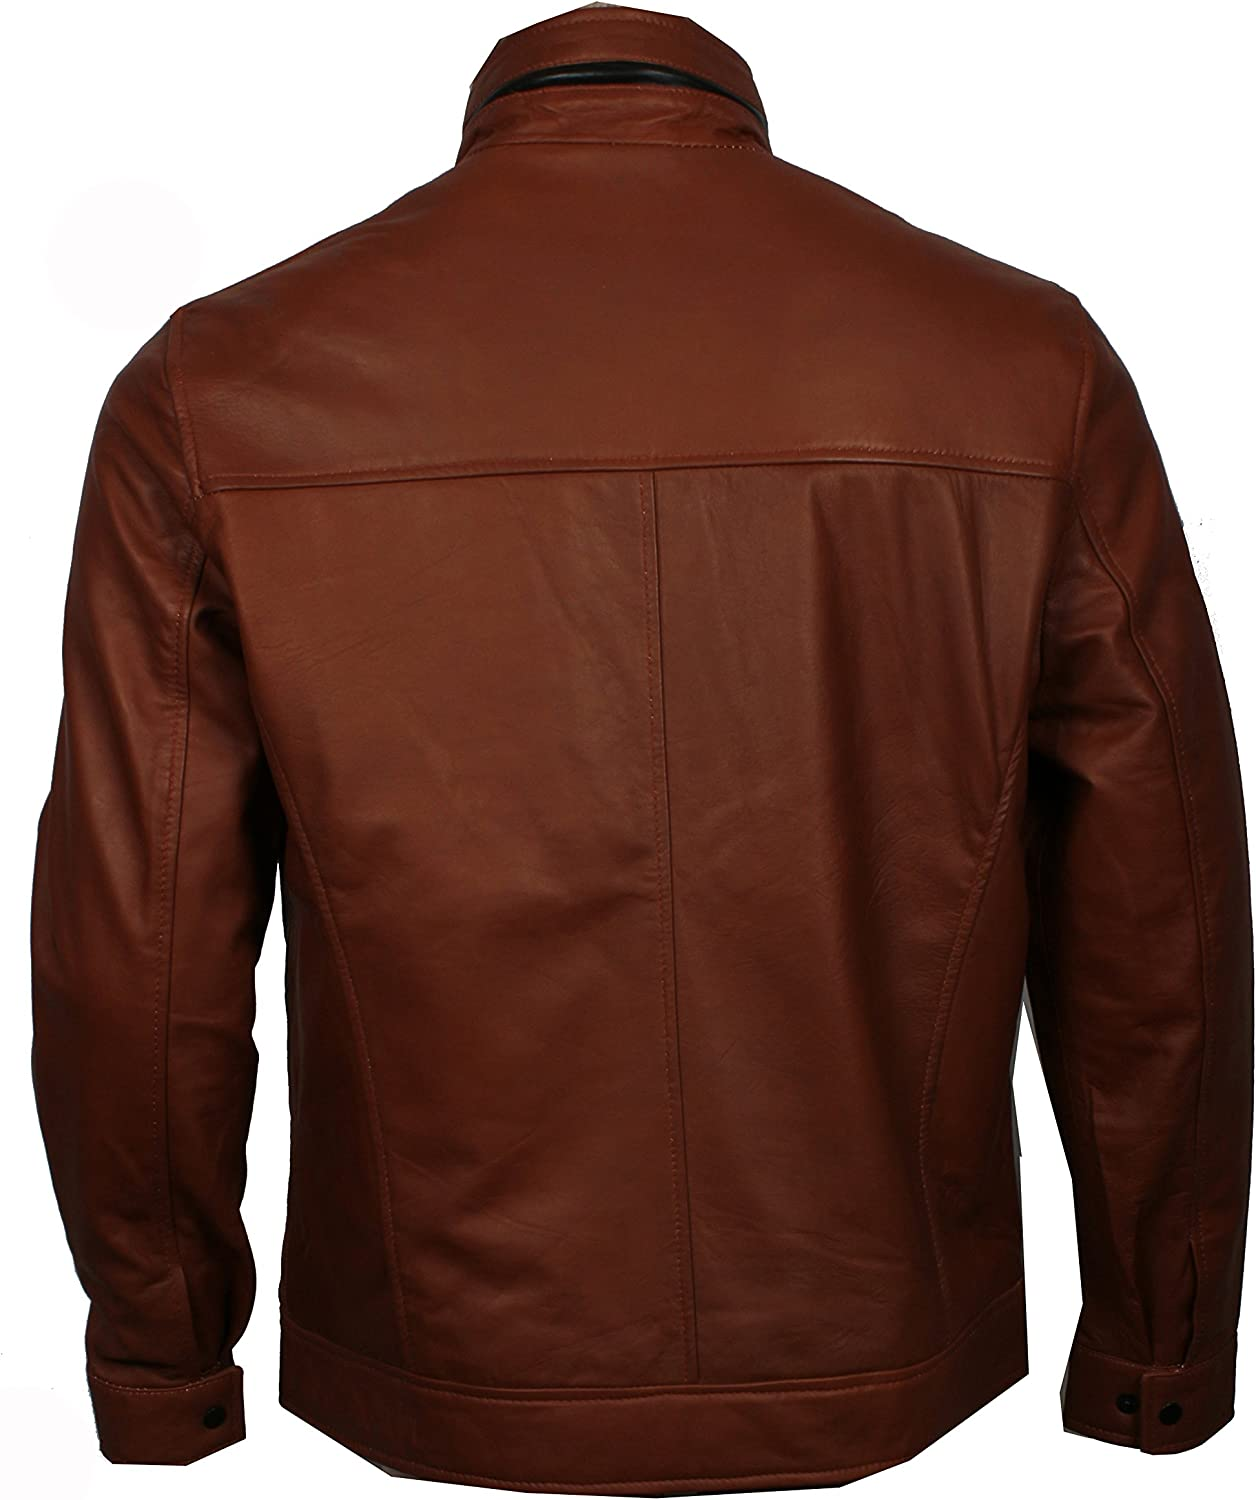 US Leather Mens Classic Vintage SlimFit Genuine Leather Jacket